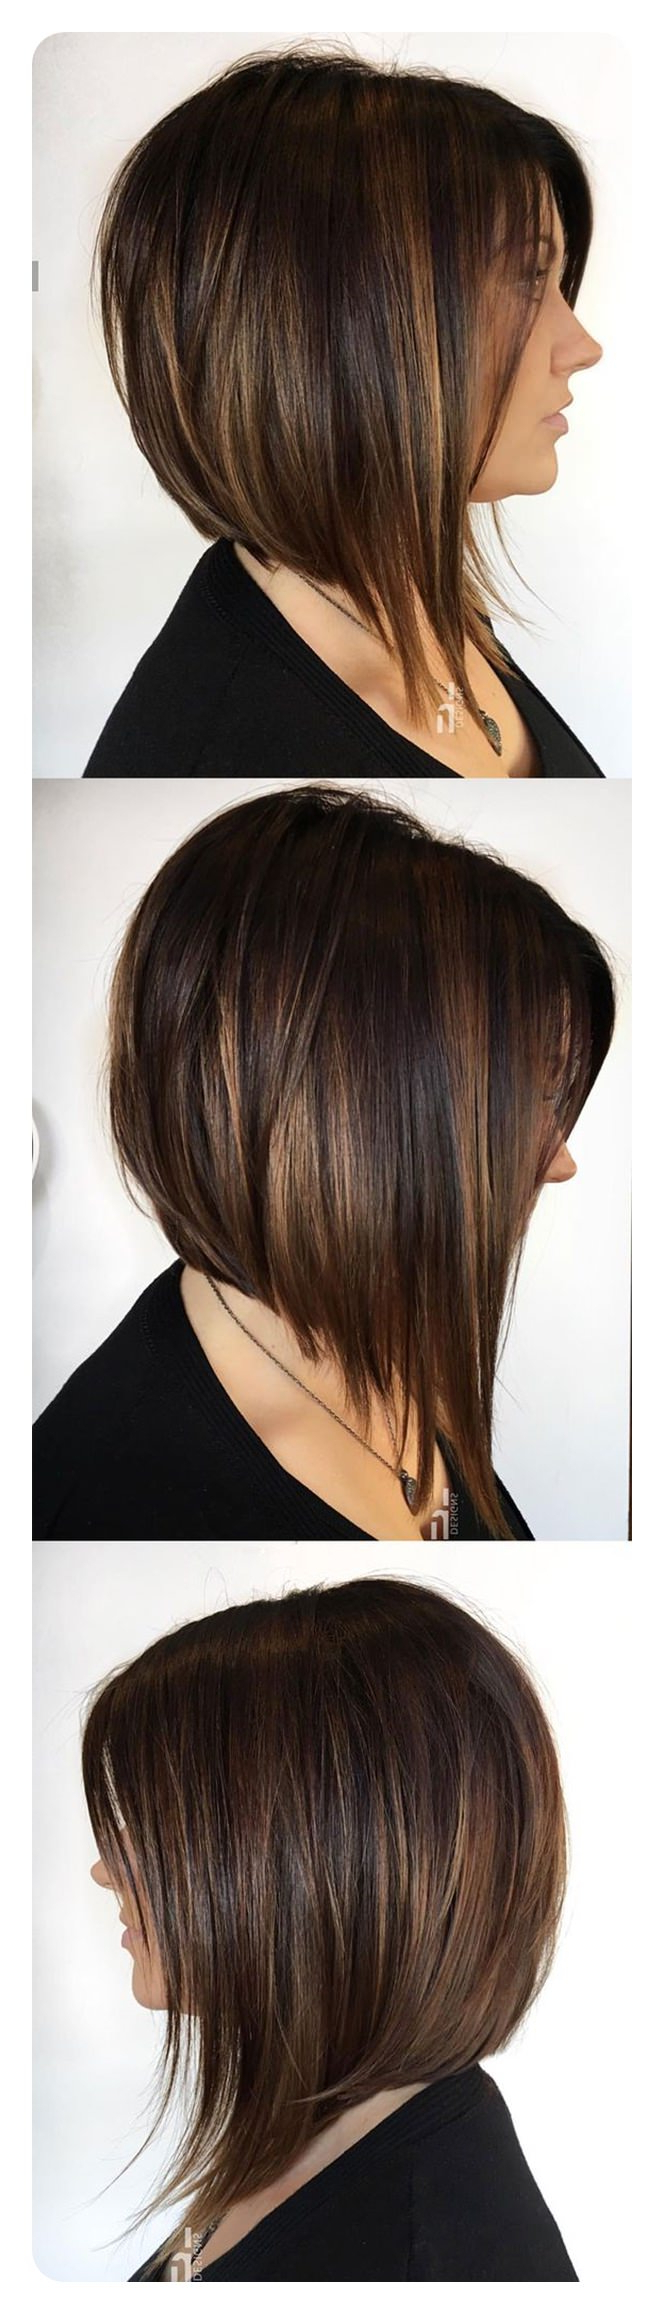 Best And Newest Bob Hairstyles With Subtle Layers Pertaining To 92 Layered Inverted Bob Hairstyles That You Should Try (View 6 of 20)